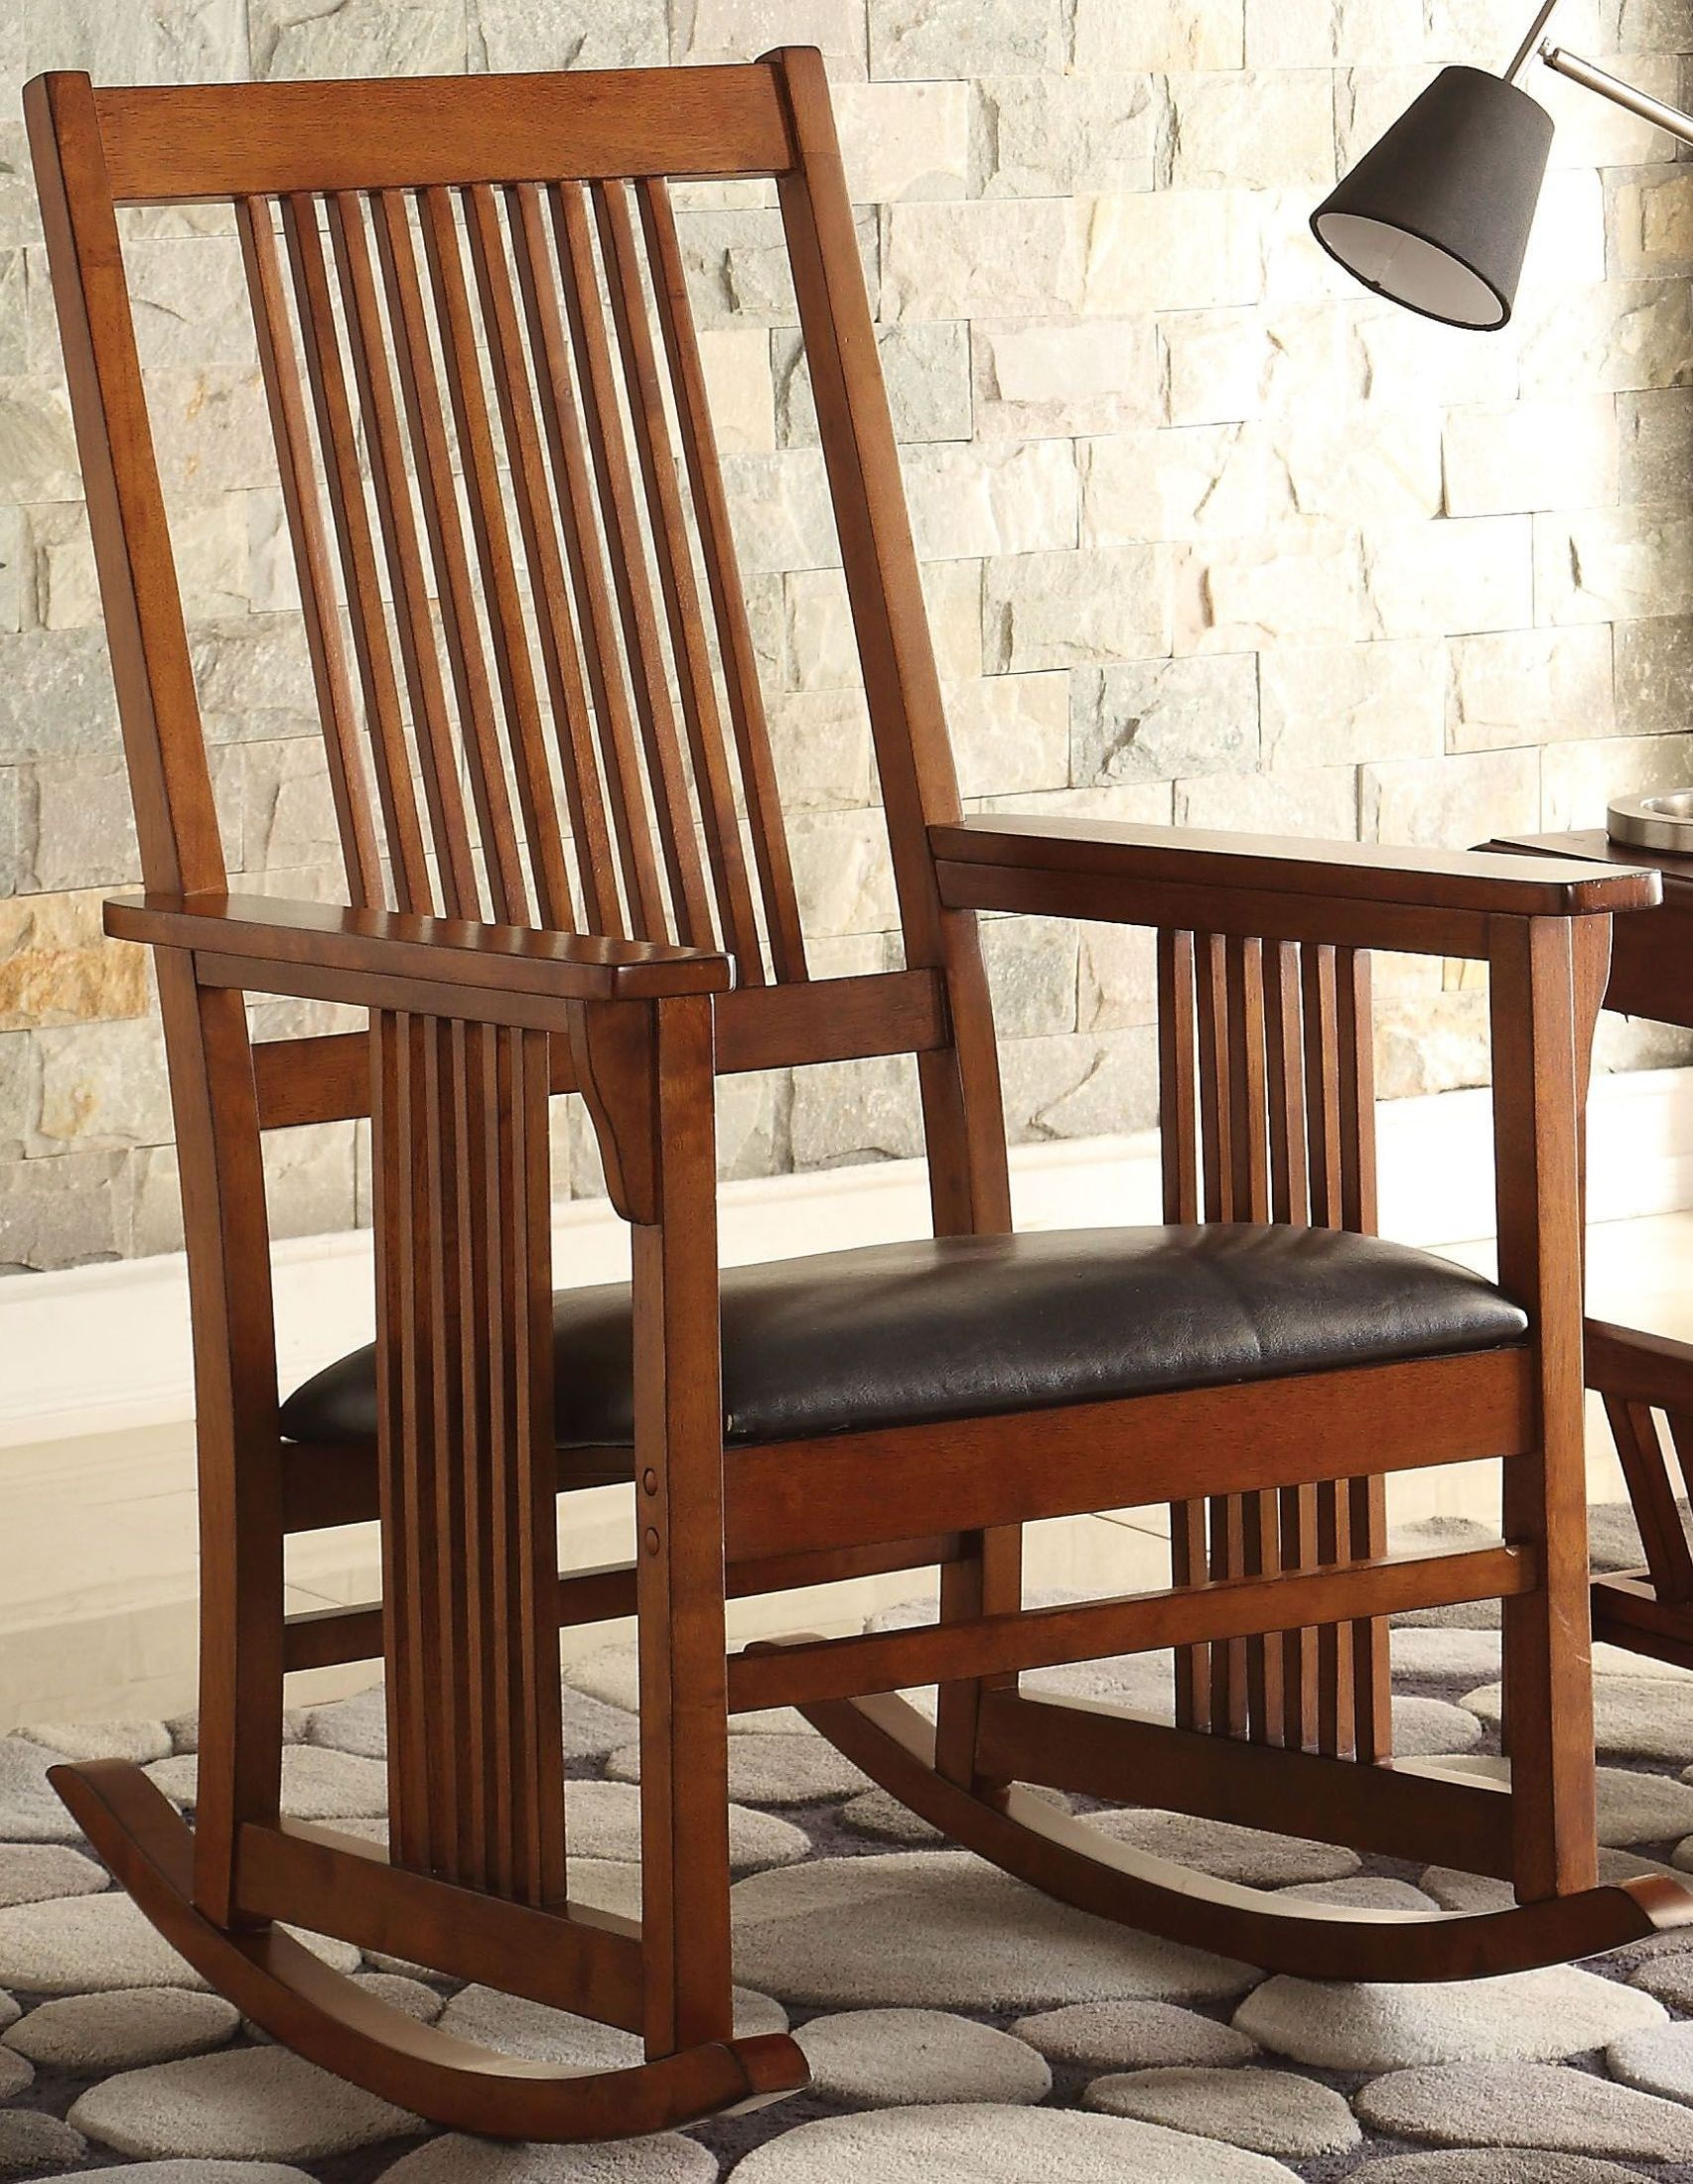 Kloris Tobacco Wooden Rocking Chair Inside Tobacco Rocking Chairs (#14 of 20)